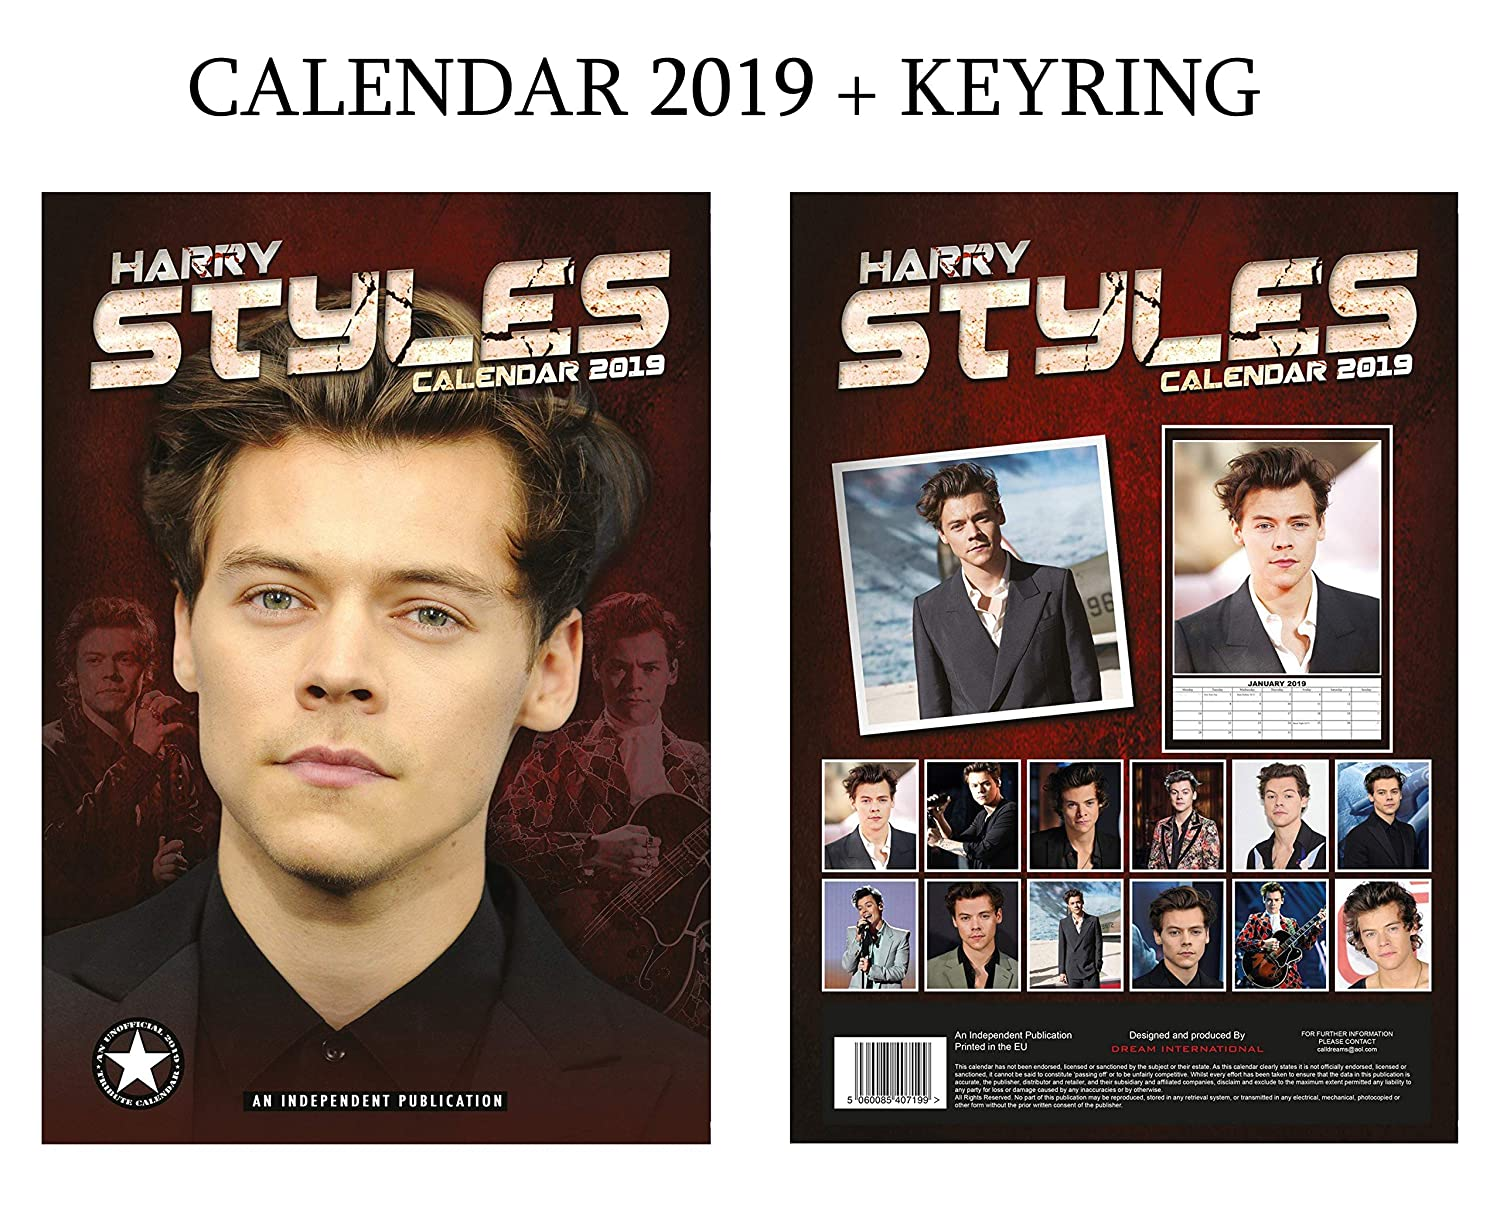 Harry Styles Calendar 2019 + Harry Styles Keyring DREAM